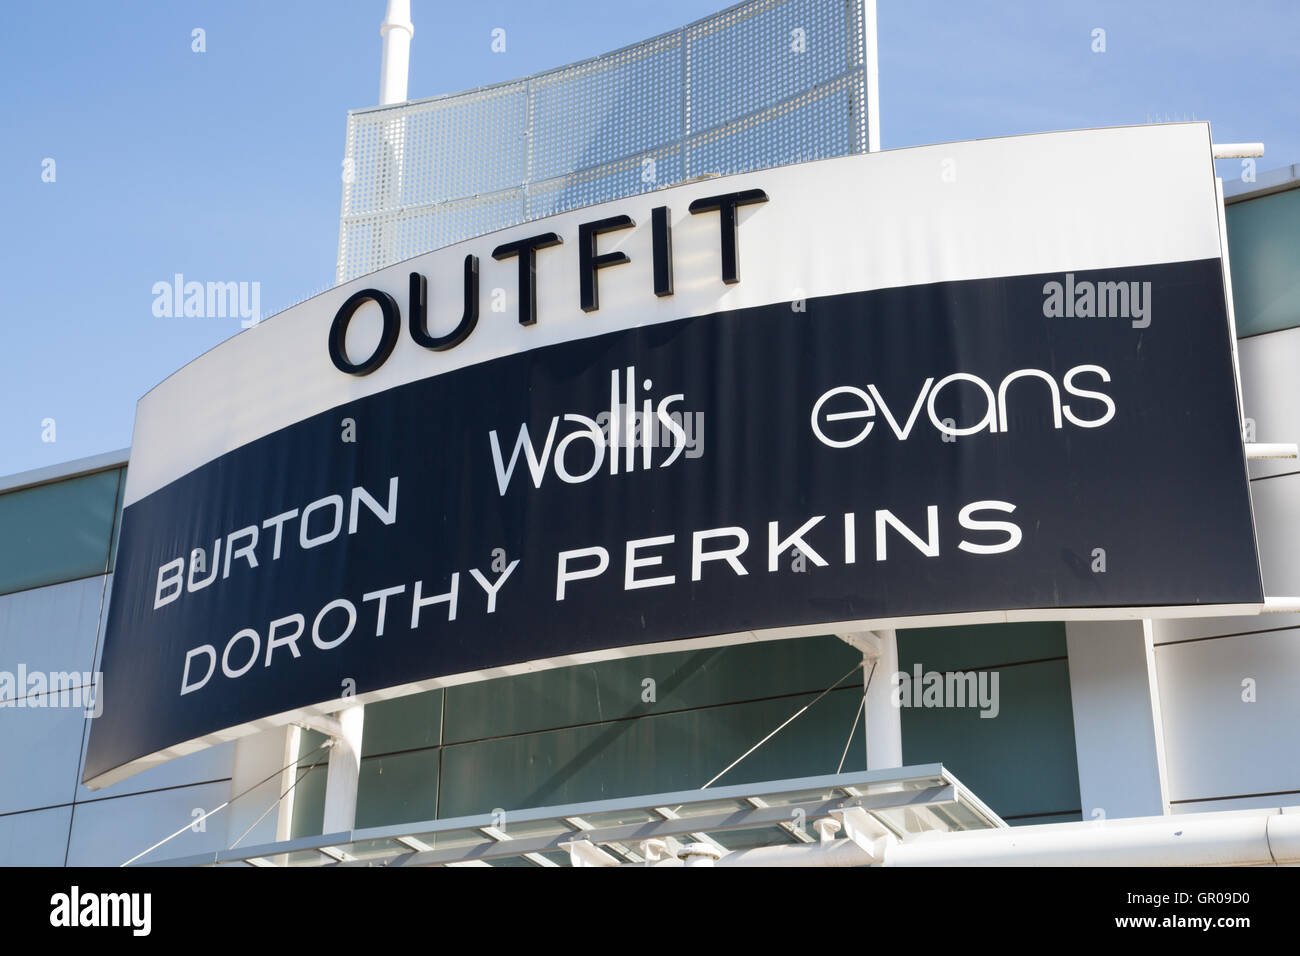 Outfit signage - Stock Image